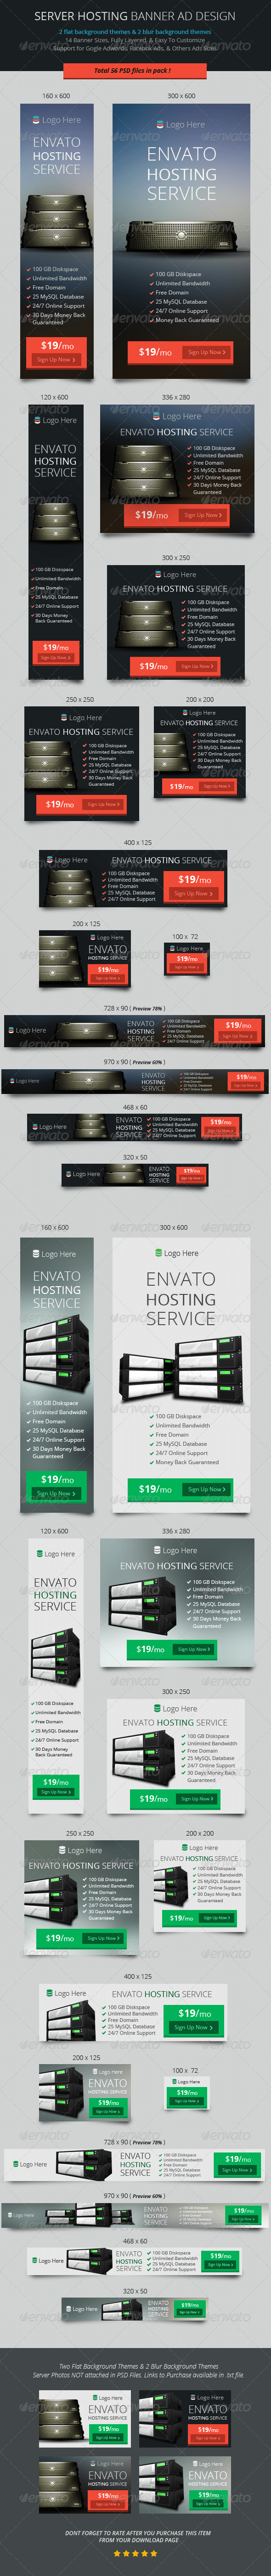 GraphicRiver Server Hosting Banner ad Design 6962983